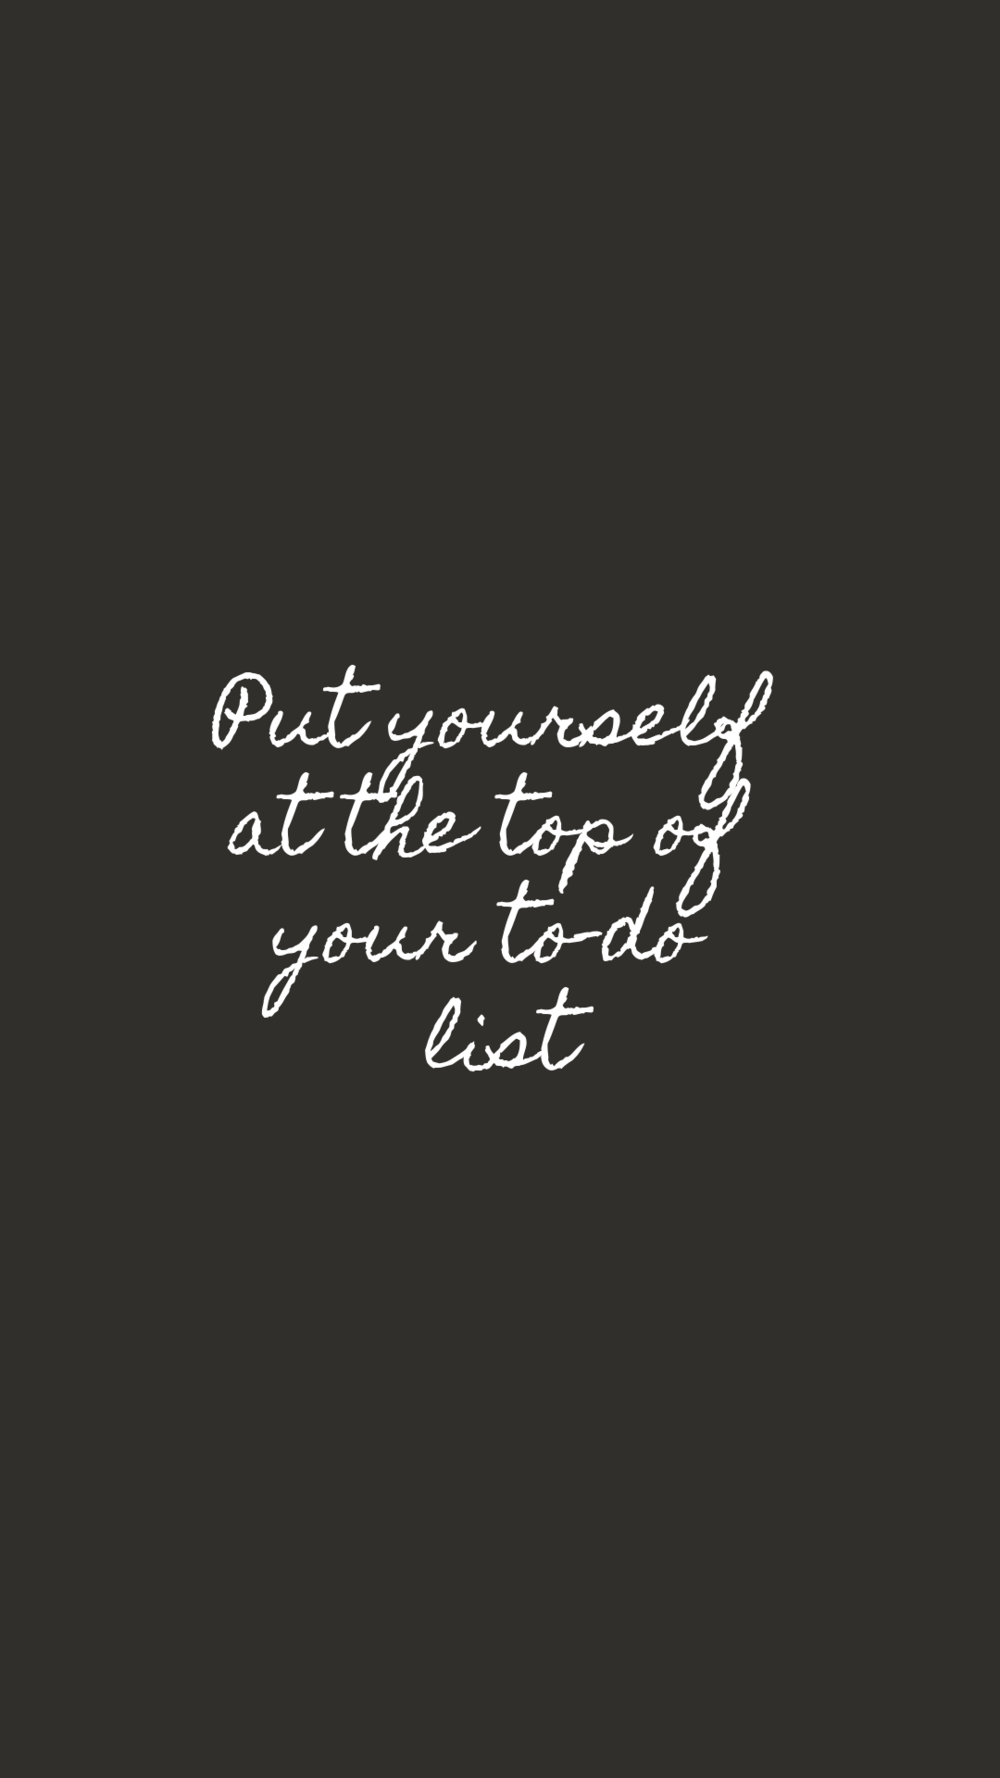 Put yourself at the top of your to-do list | Empowering Quotes for Your Phone Screen Background | Miranda Schroeder Blog | www.mirandaschroeder.com